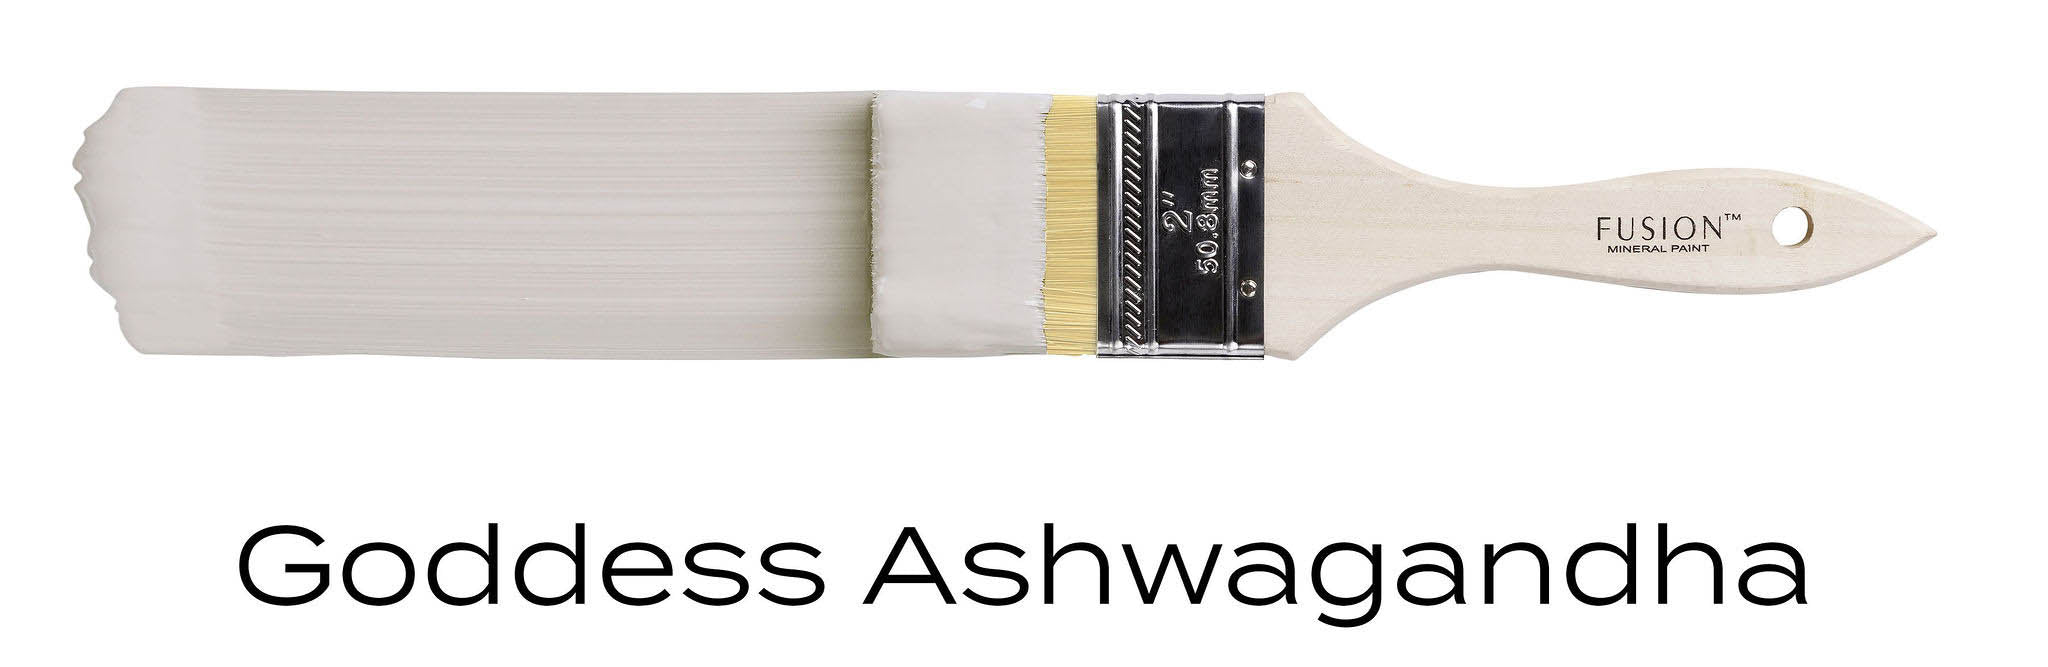 Goddess Ashwagandha Fusion Mineral Paint Furniture Paint Colour Example, No Prep or top coat needed, UK Stockist